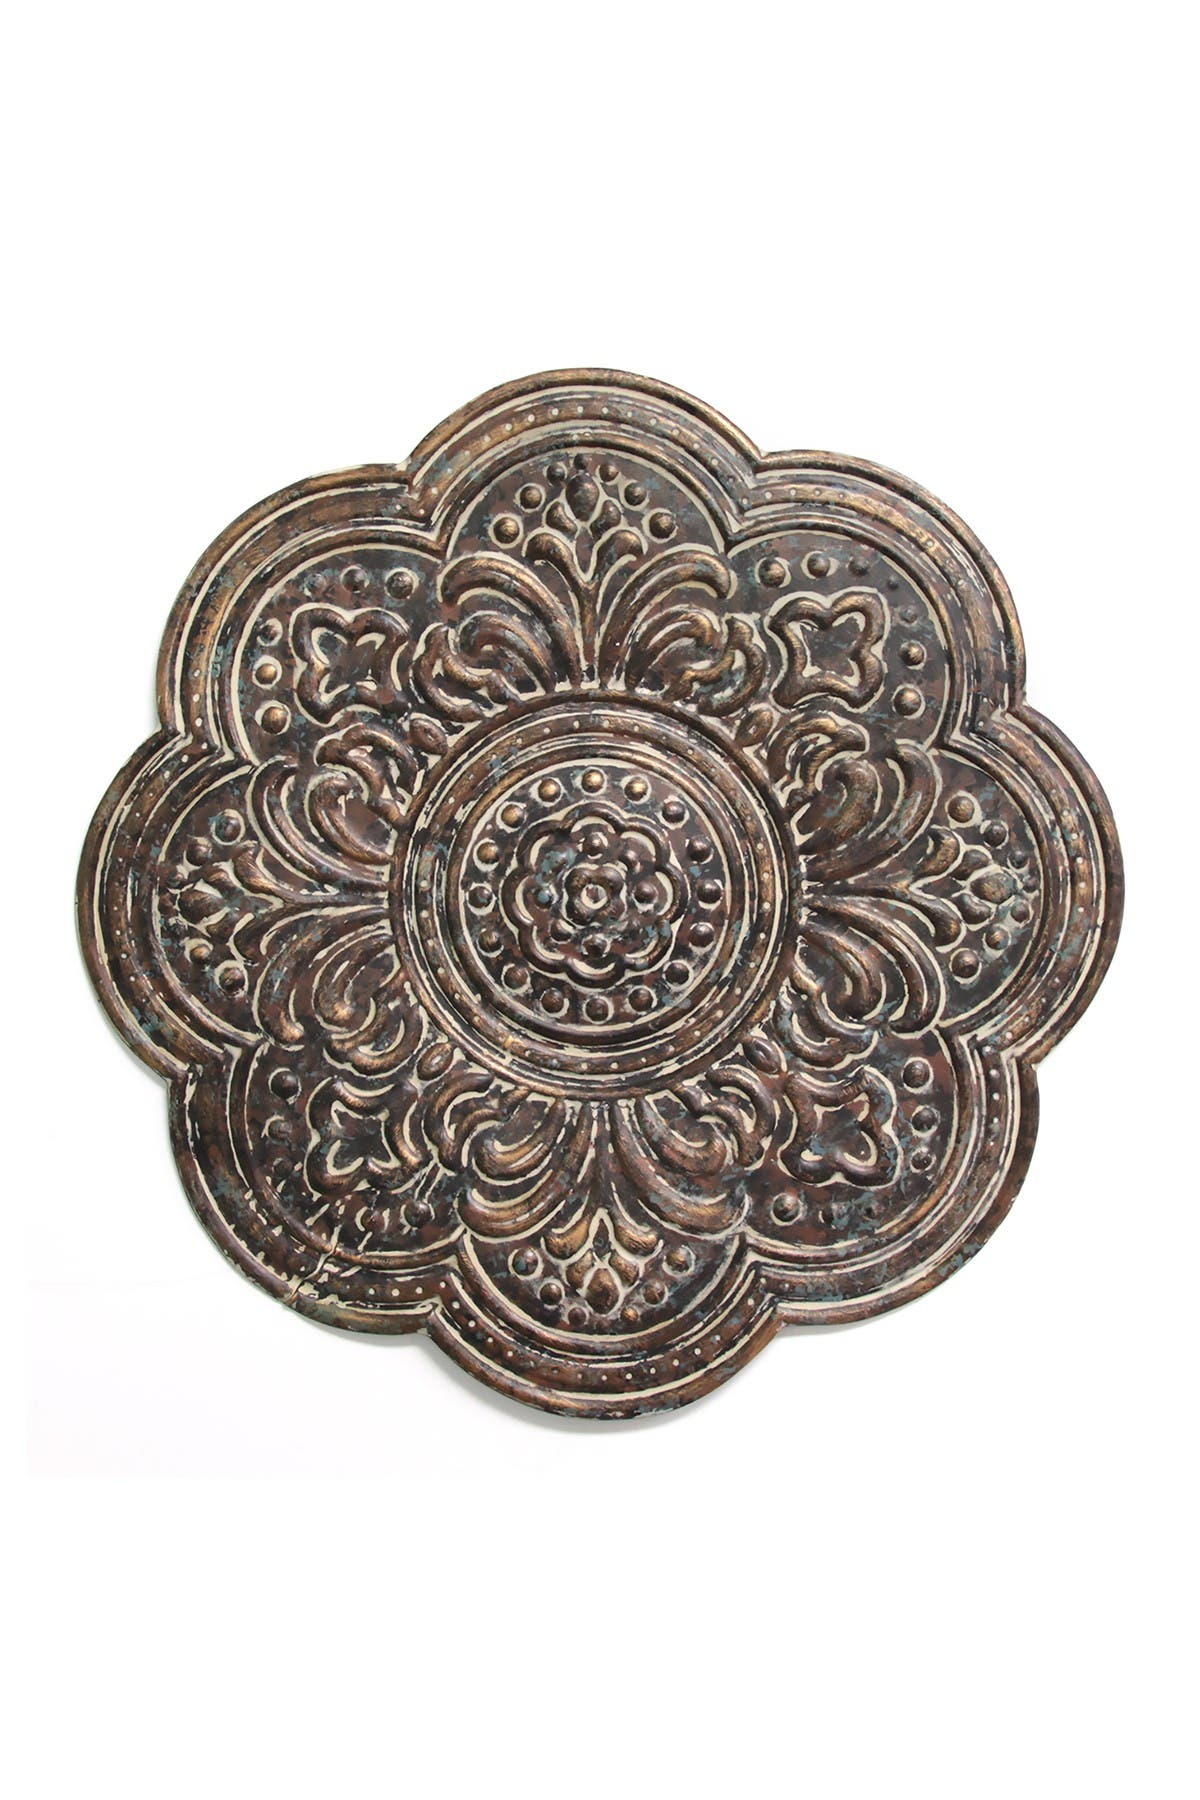 Image of Stratton Home Brown Rustic Bronze Medallion Wall Decor